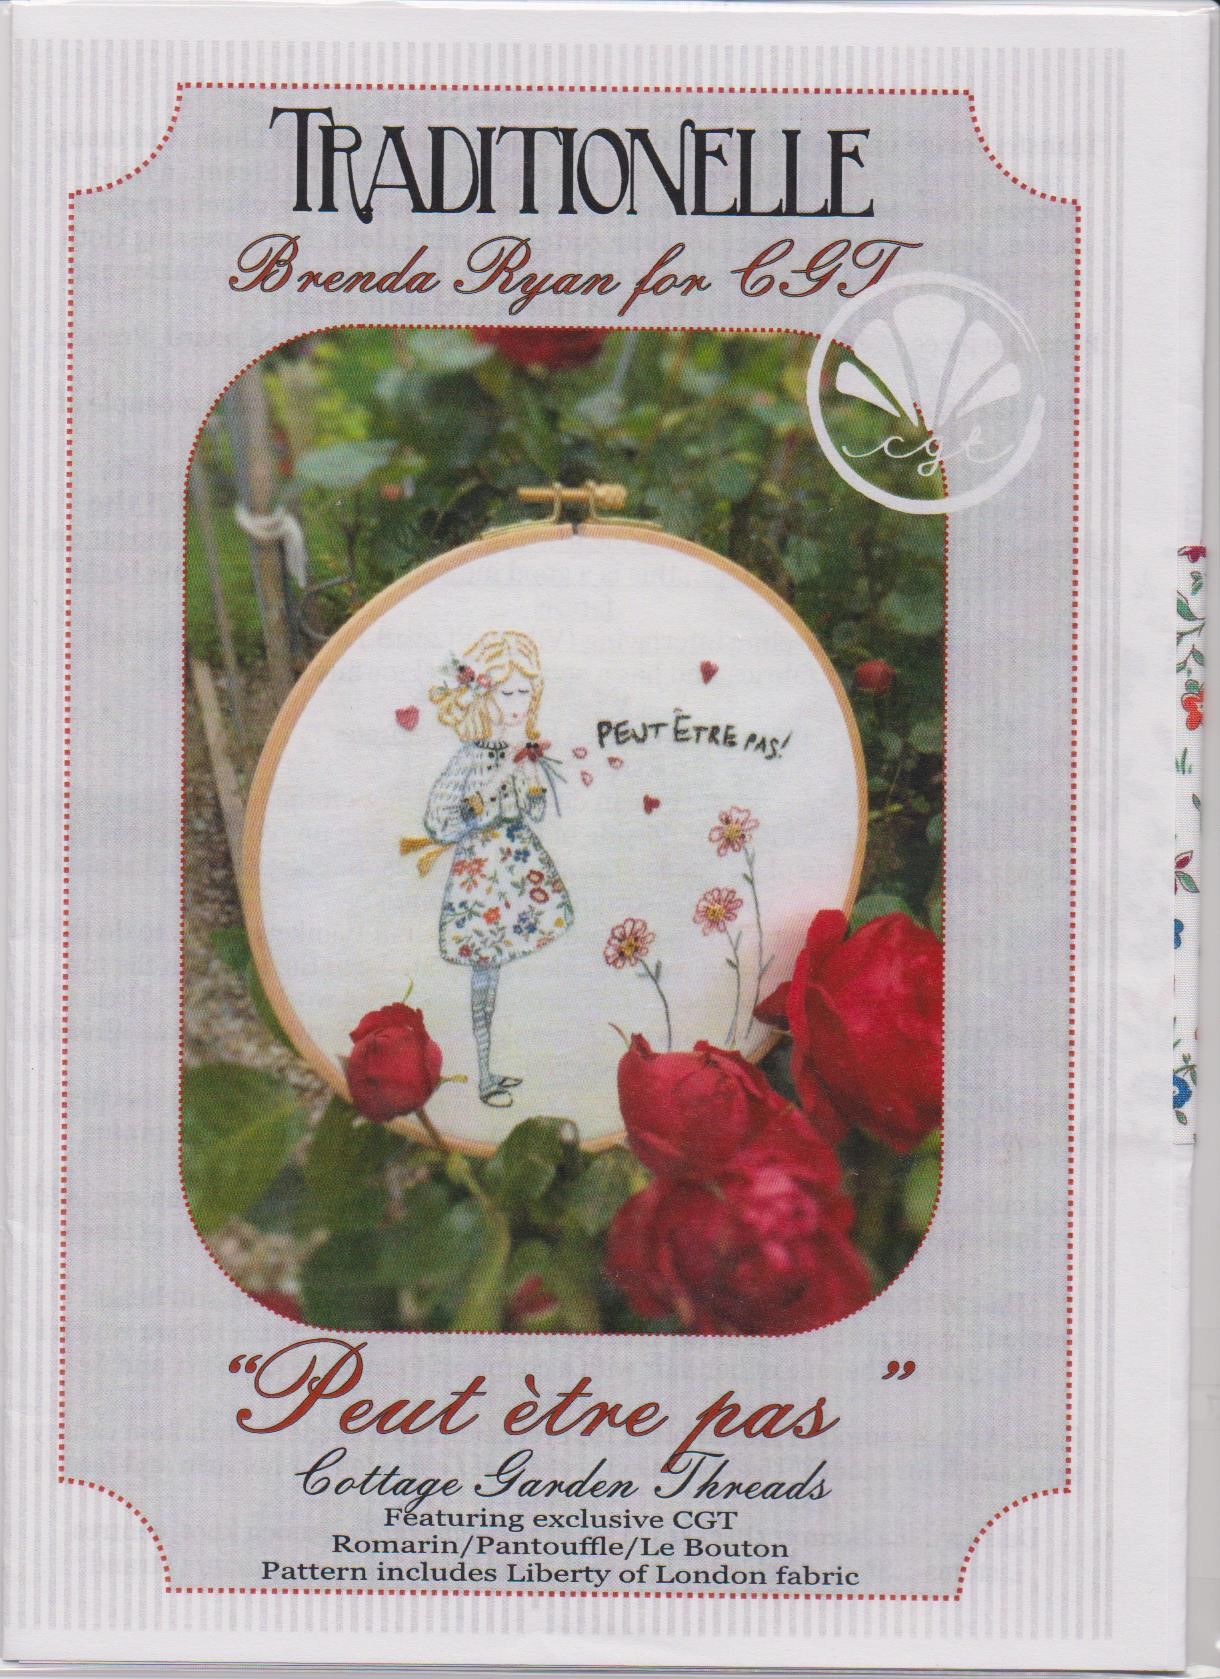 Peut etre pas Embroidery pattern by Brenda Ryan for Cottage Garden Threads